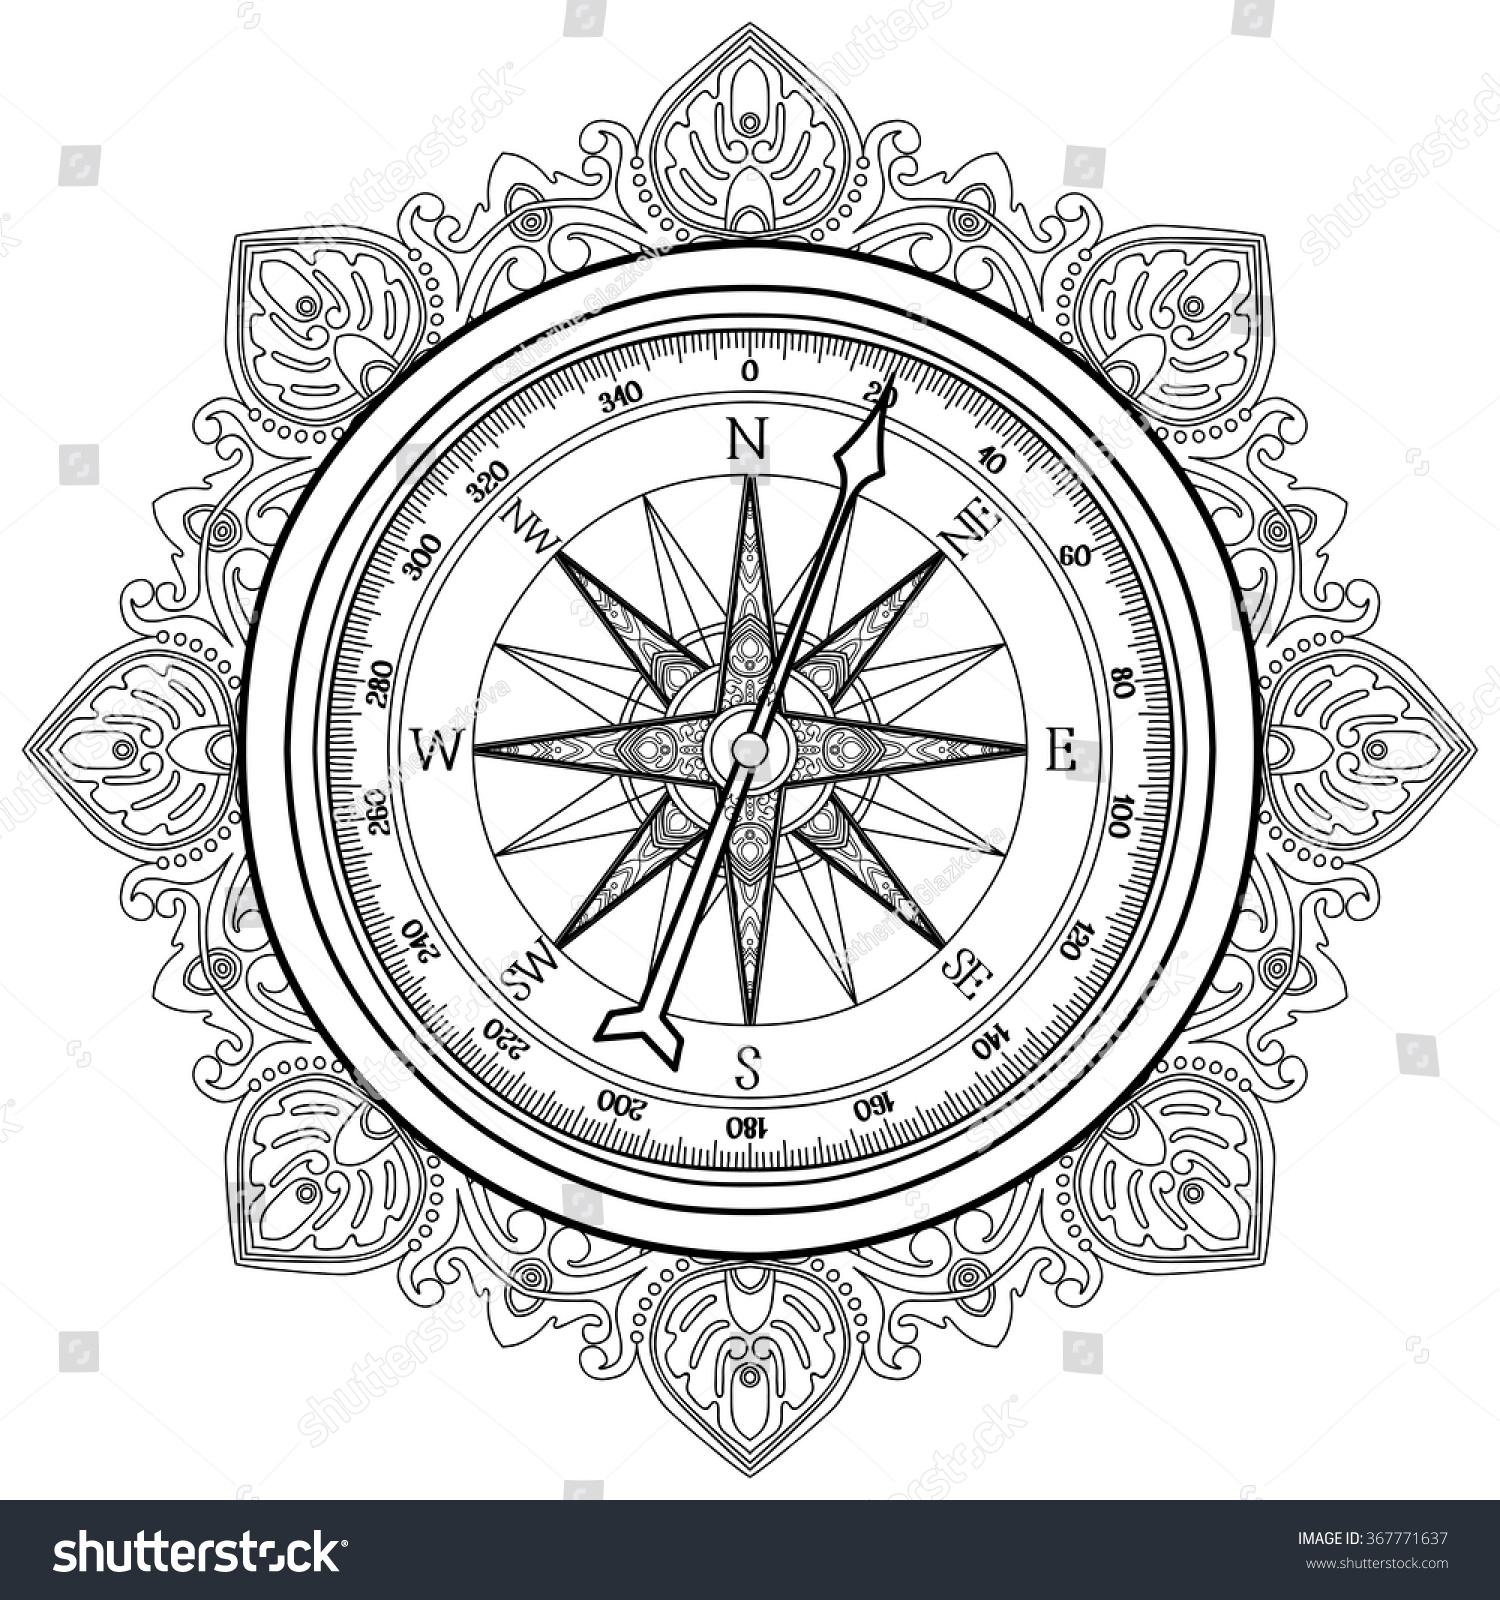 Graphic Wind Rose Compass Drawn Line Stock Vector